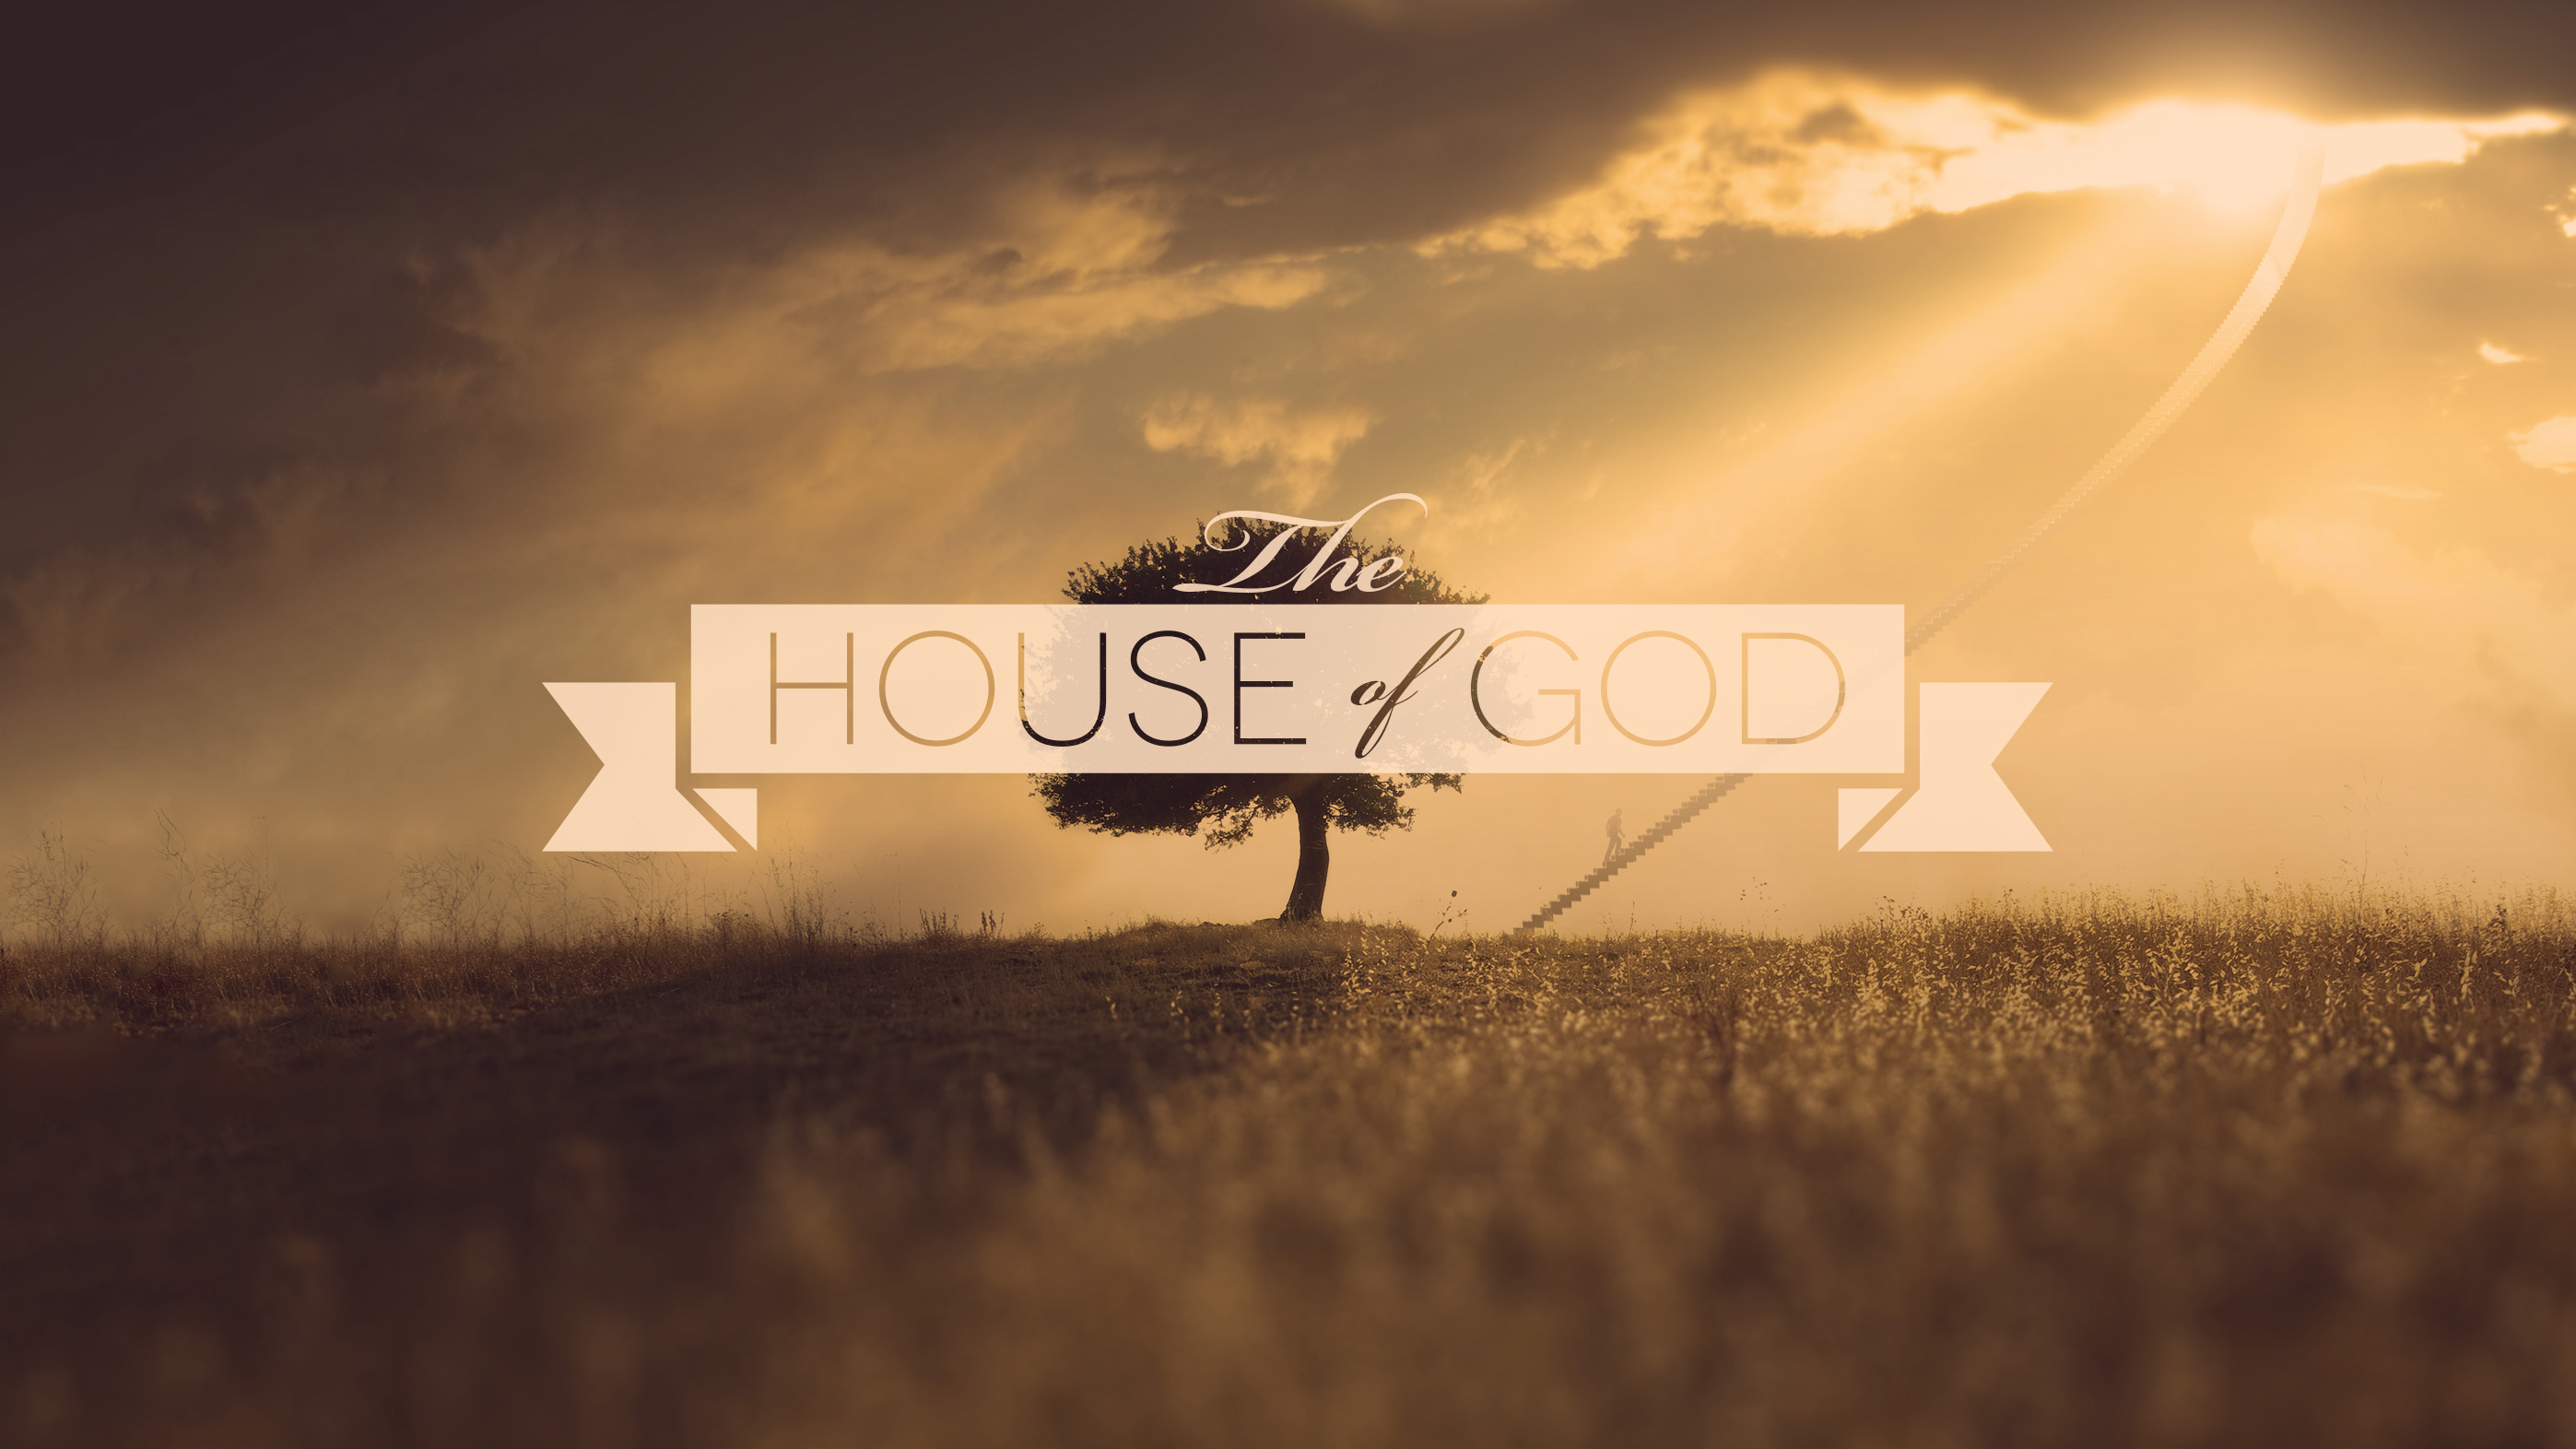 Message Series The House of God